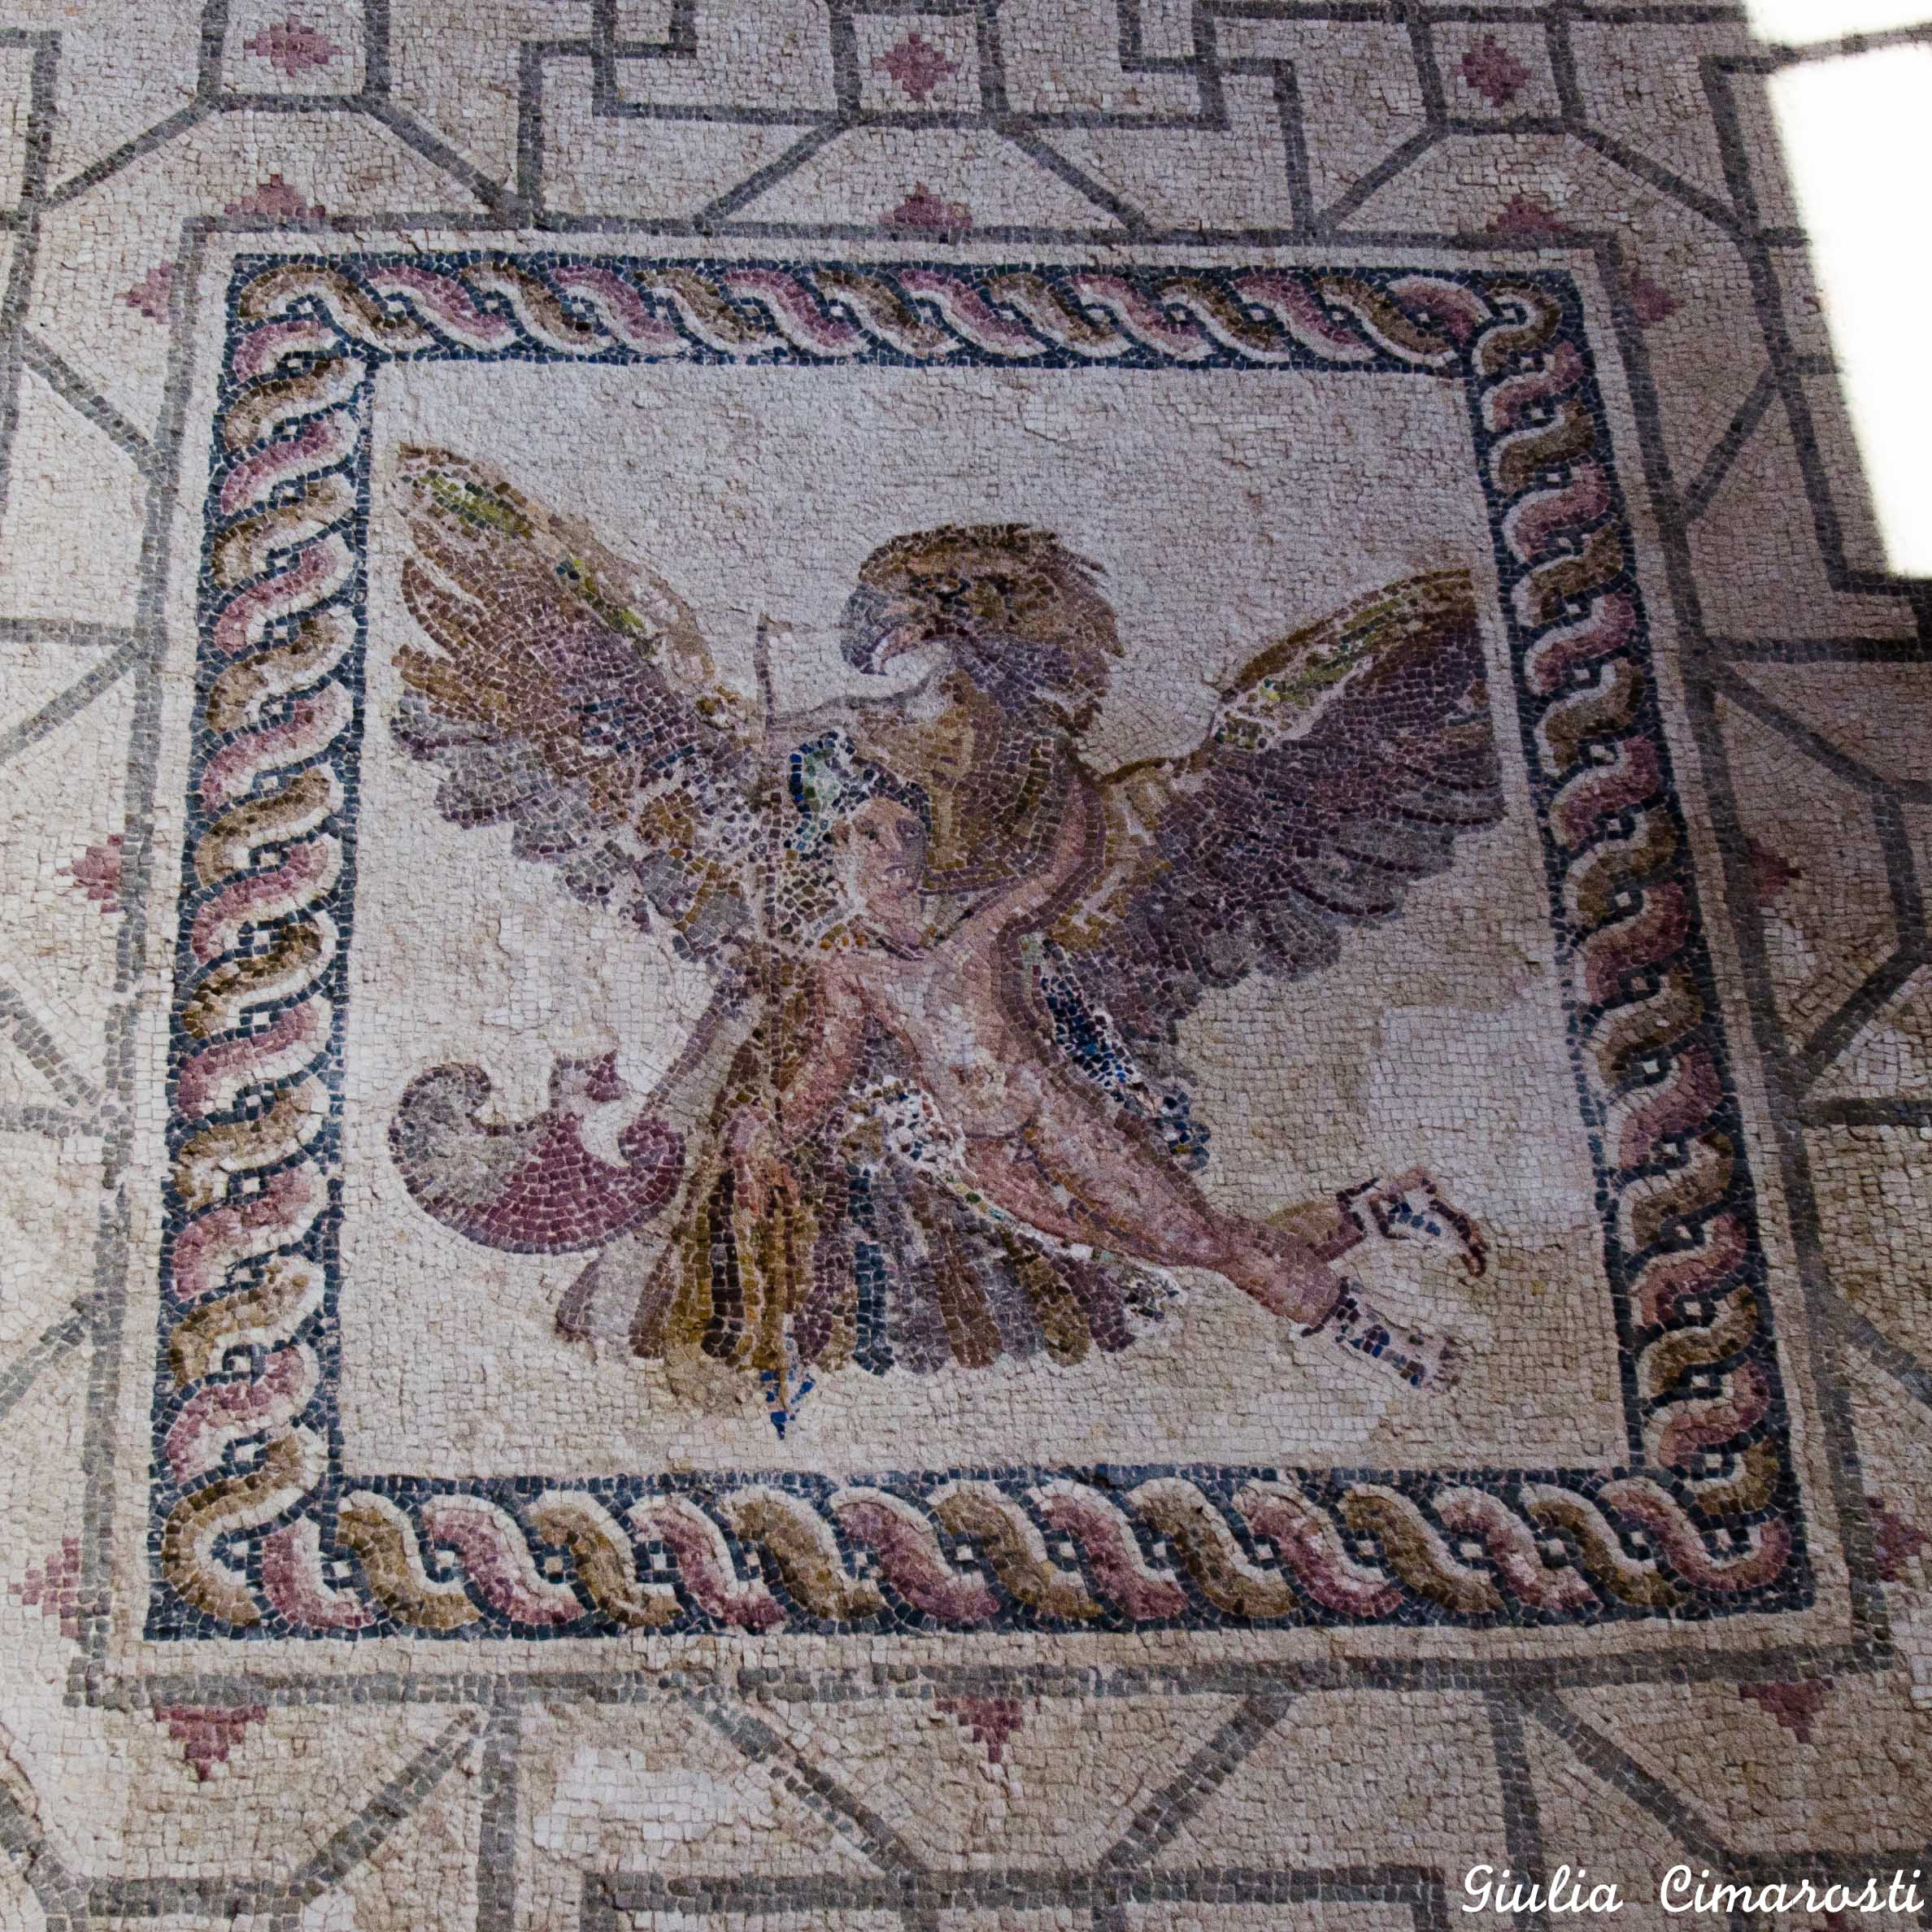 The mosaics of Pafos in Cyprus